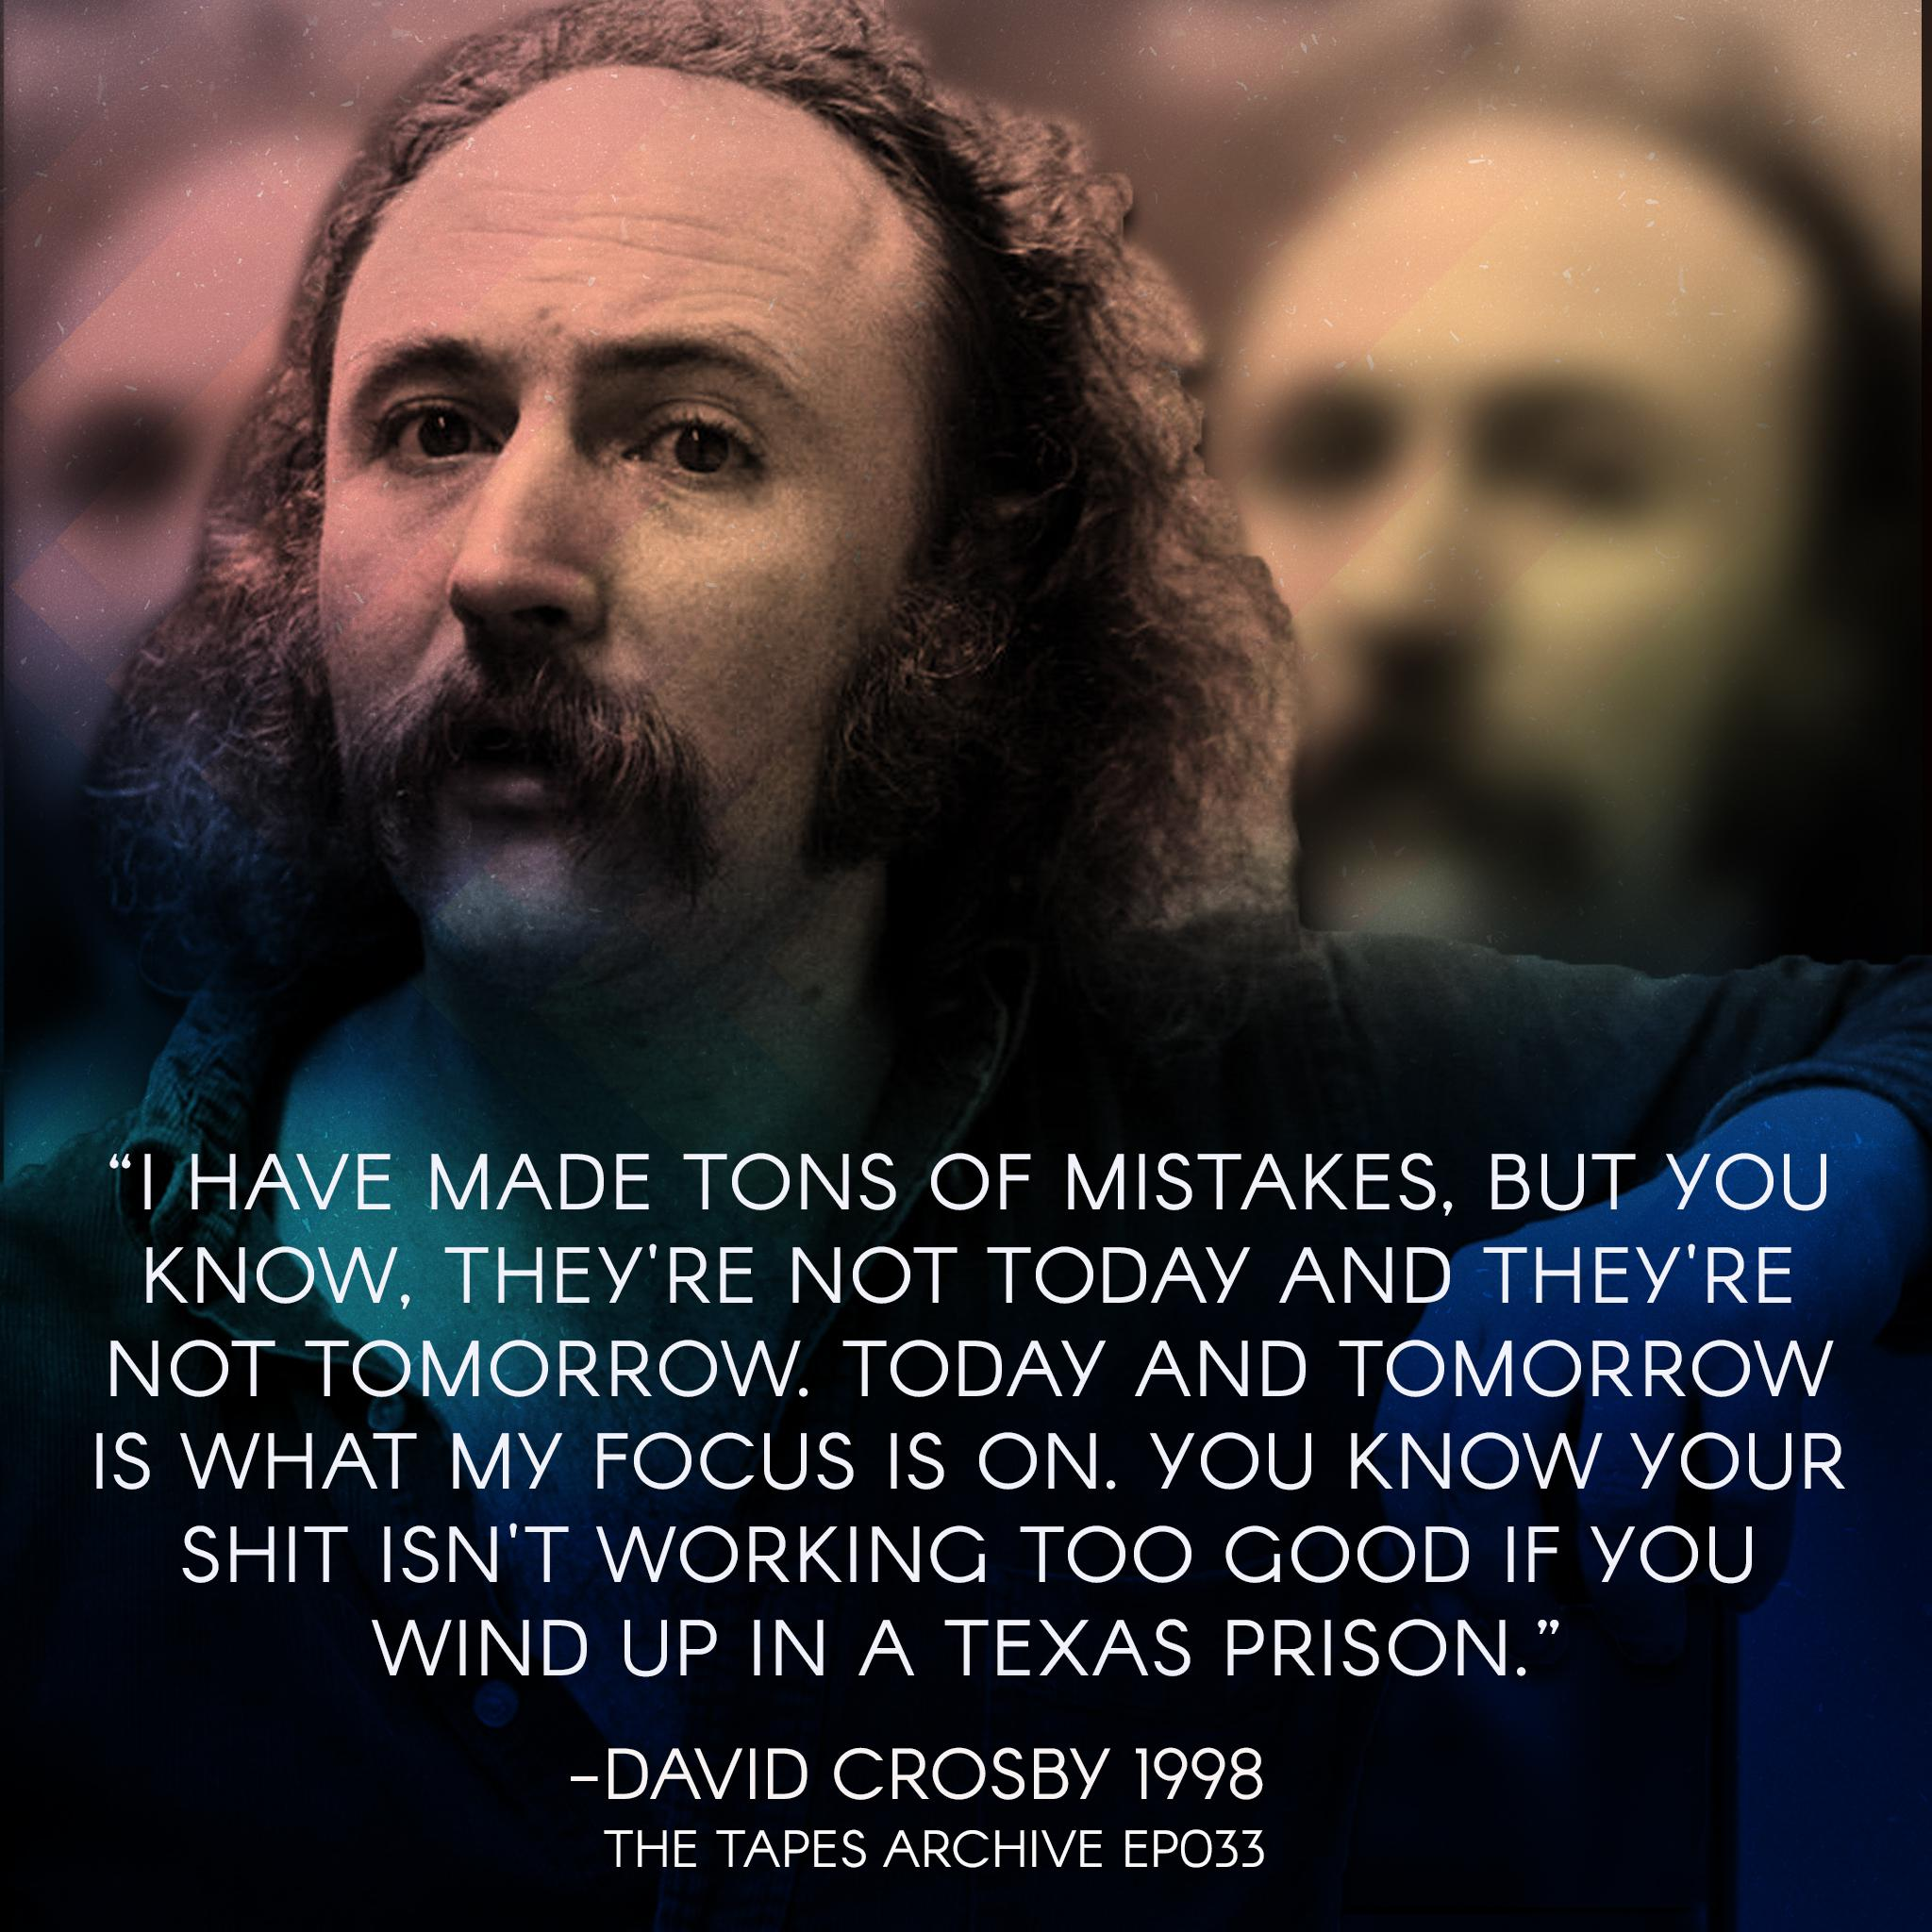 """I have made tons of mistakes, but you know, they're not today, and they're not tomorrow. Today and tomorrow is what my focus is on. You know, you know your shit isn't working too good if you wind up in a Texas prison."" – David Crosby[2048X2048]"